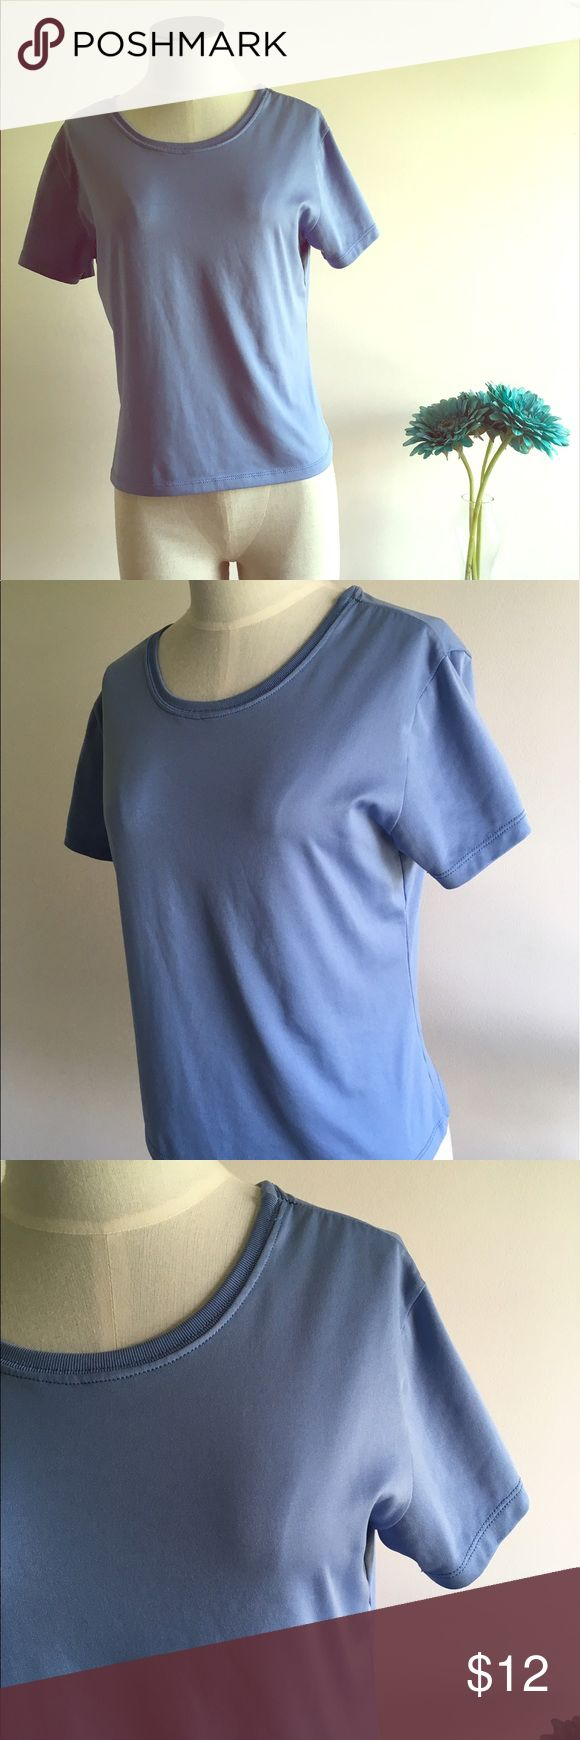 ⭐️Patagonia Blue Hiking Short Sleeves Tee⭐️ ⭐️Patagonia Blue Hiking Short Sleeve Tee⭐️ Size Medium. Patagonia brand. Short Sleeve. Excellent Condition. Next day shipping. Perfect for hiking! Very sleek. All sales are final. Patagonia Tops Tees - Short Sleeve